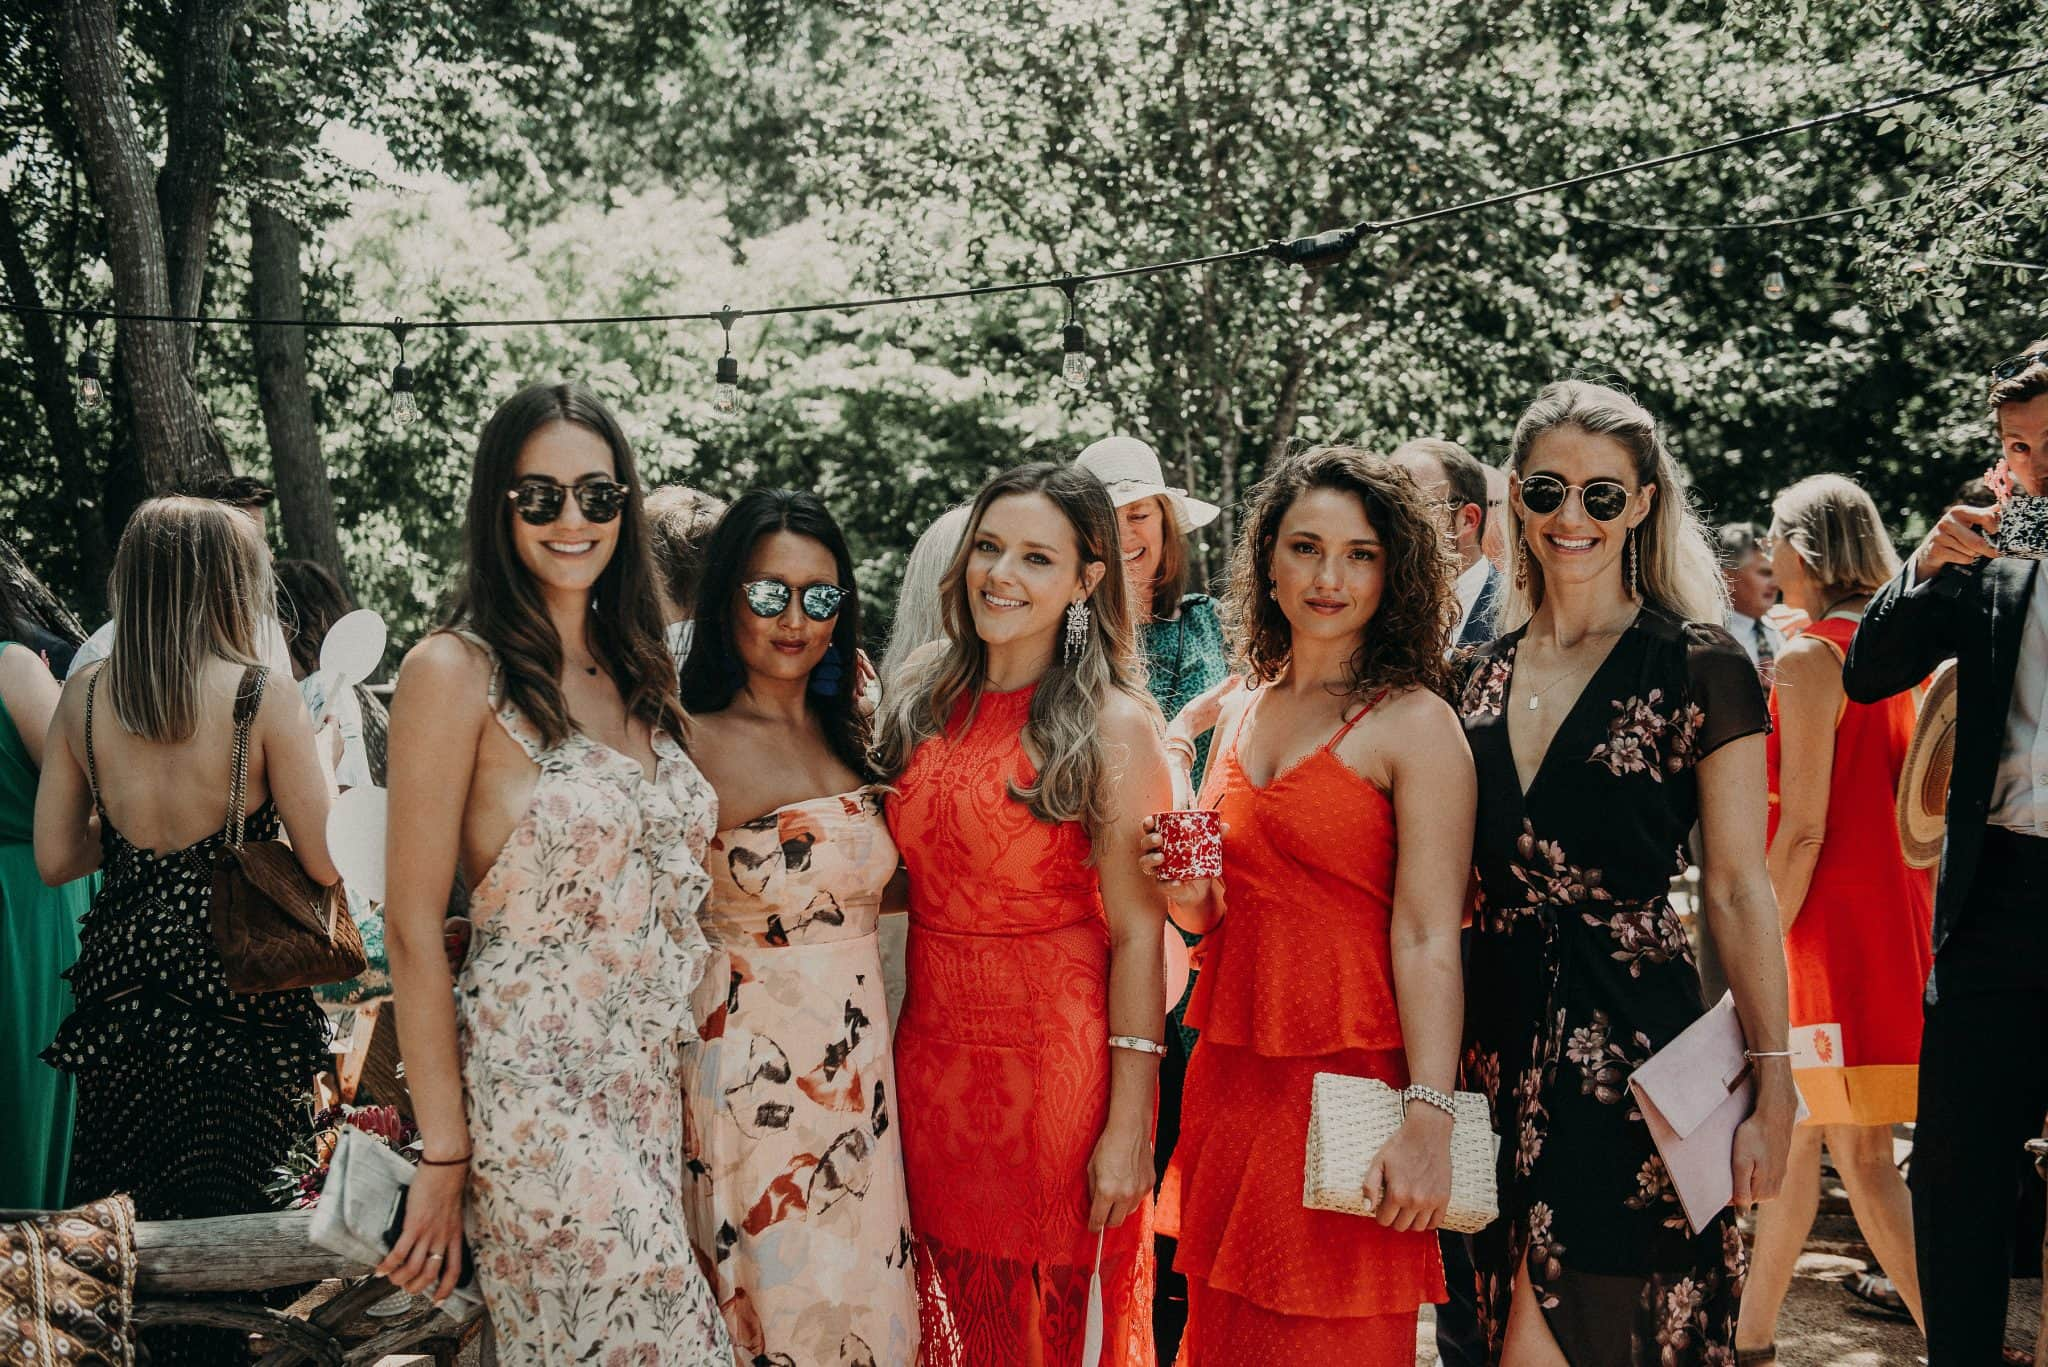 five female wedding guests standing side-by-side and smiling at the camera in Austin, Texas during the reception and with other wedding guests mingling behind them